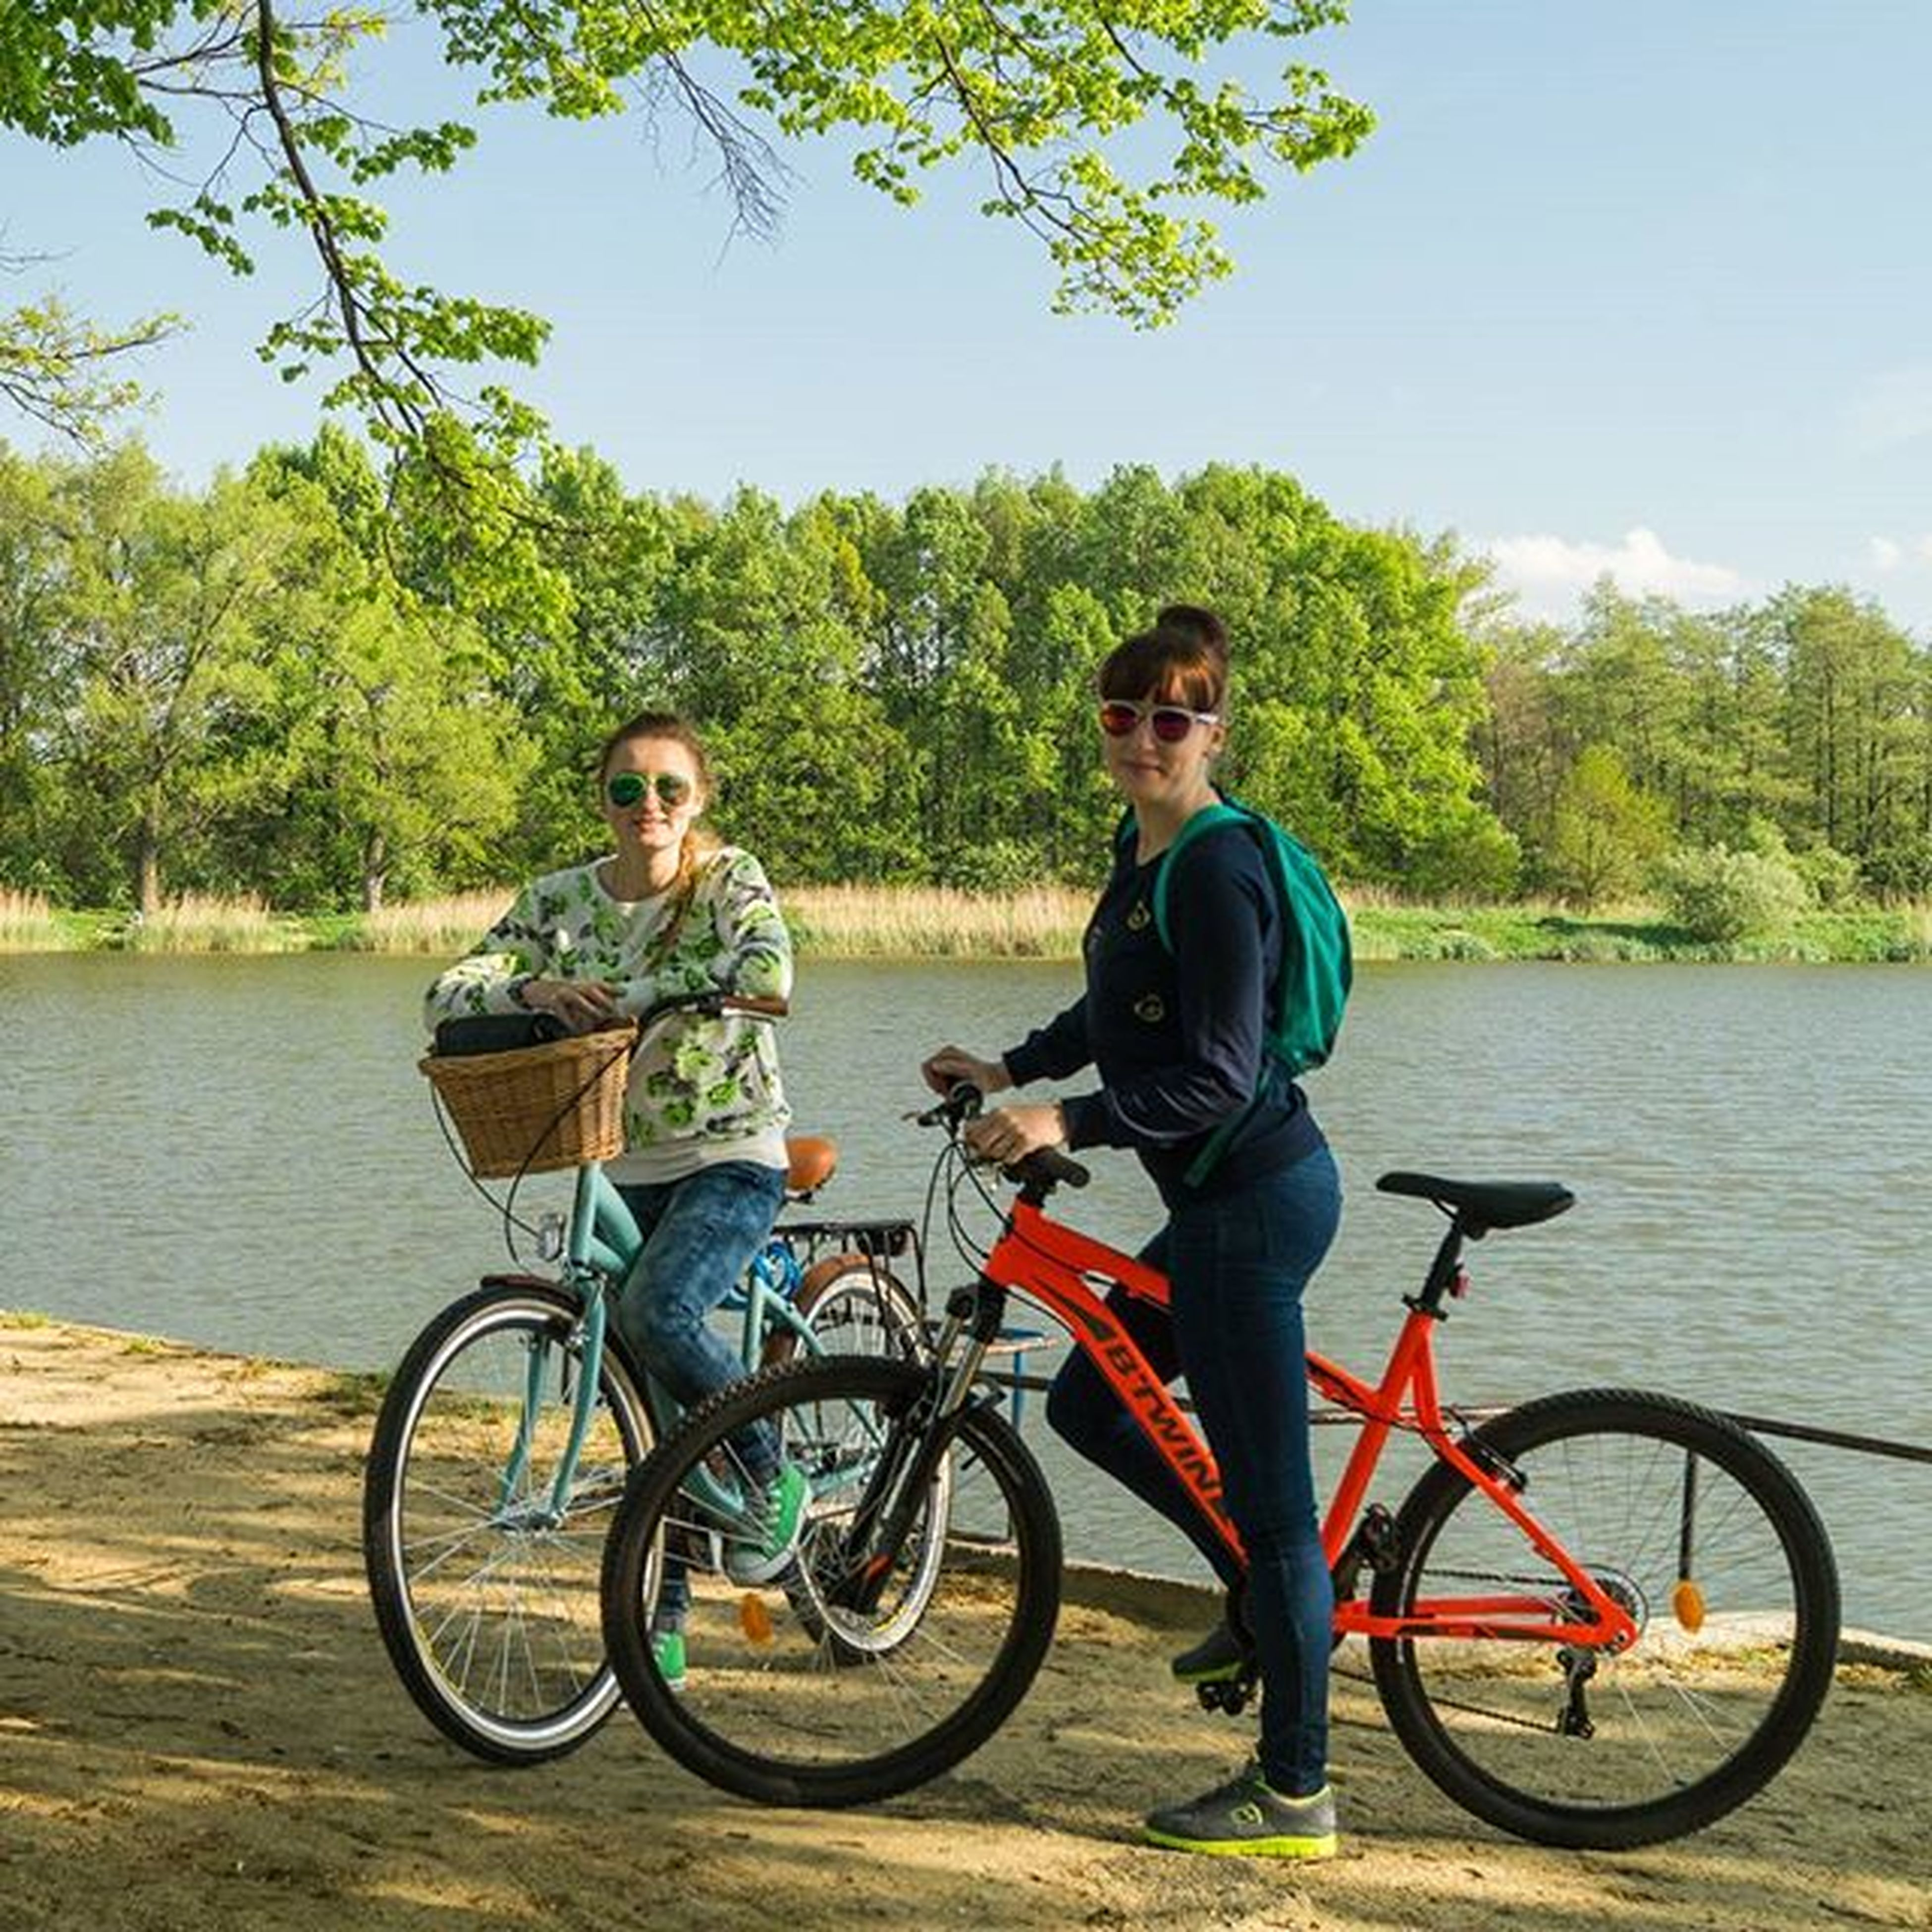 bicycle, mode of transport, transportation, lifestyles, leisure activity, water, tree, river, lake, riding, land vehicle, casual clothing, men, full length, sitting, travel, nature, day